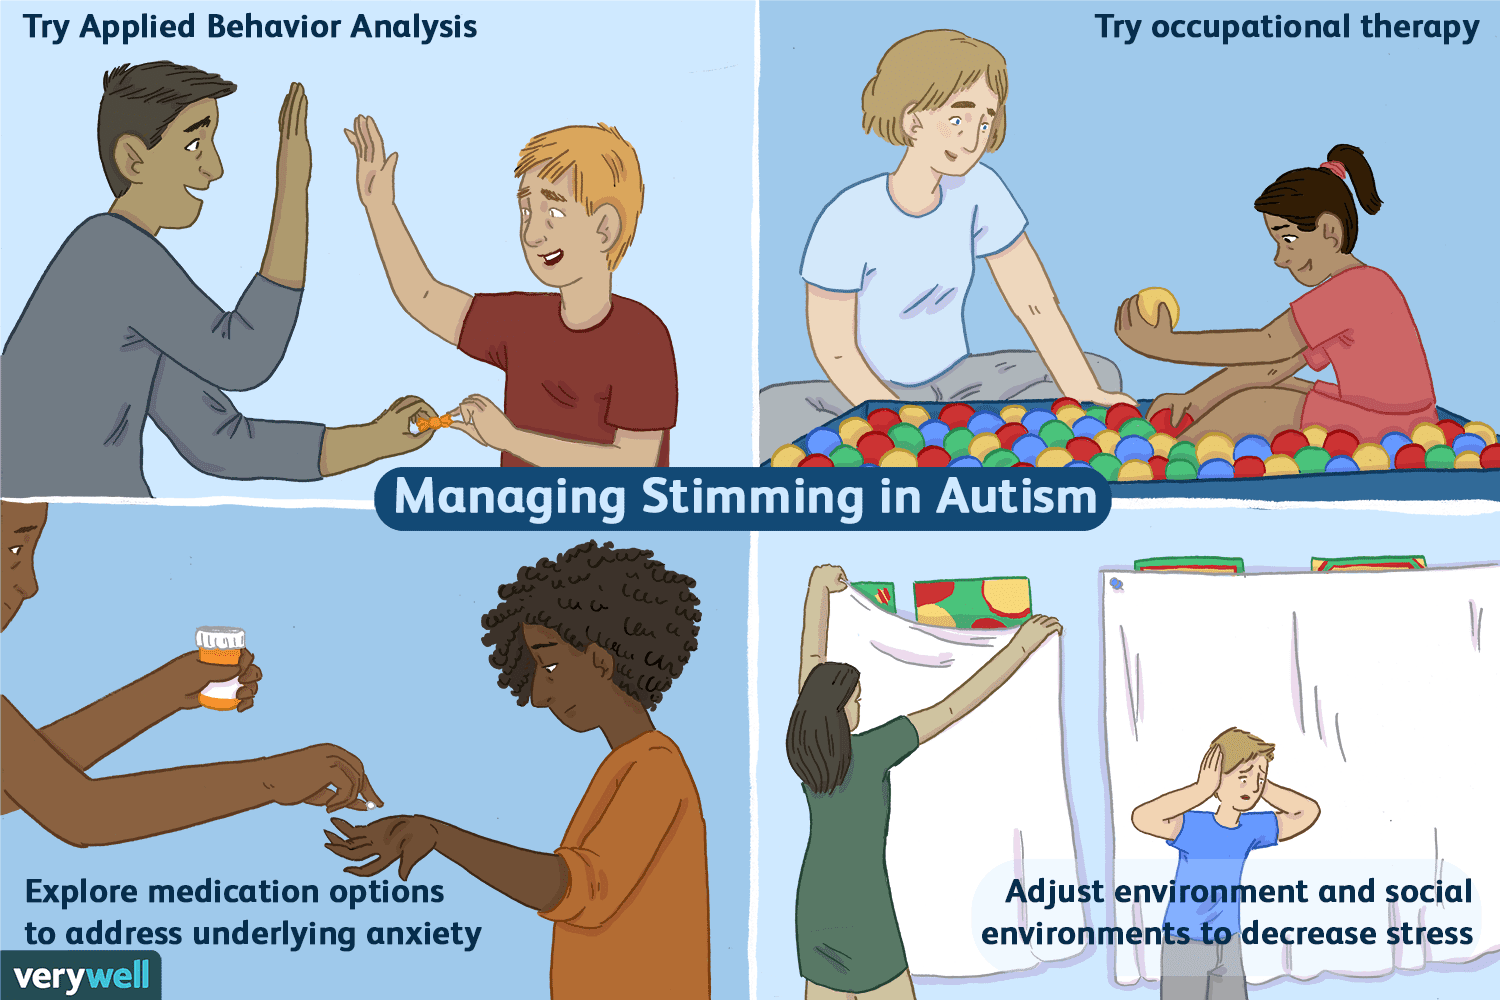 Overview of Stimming in Autism